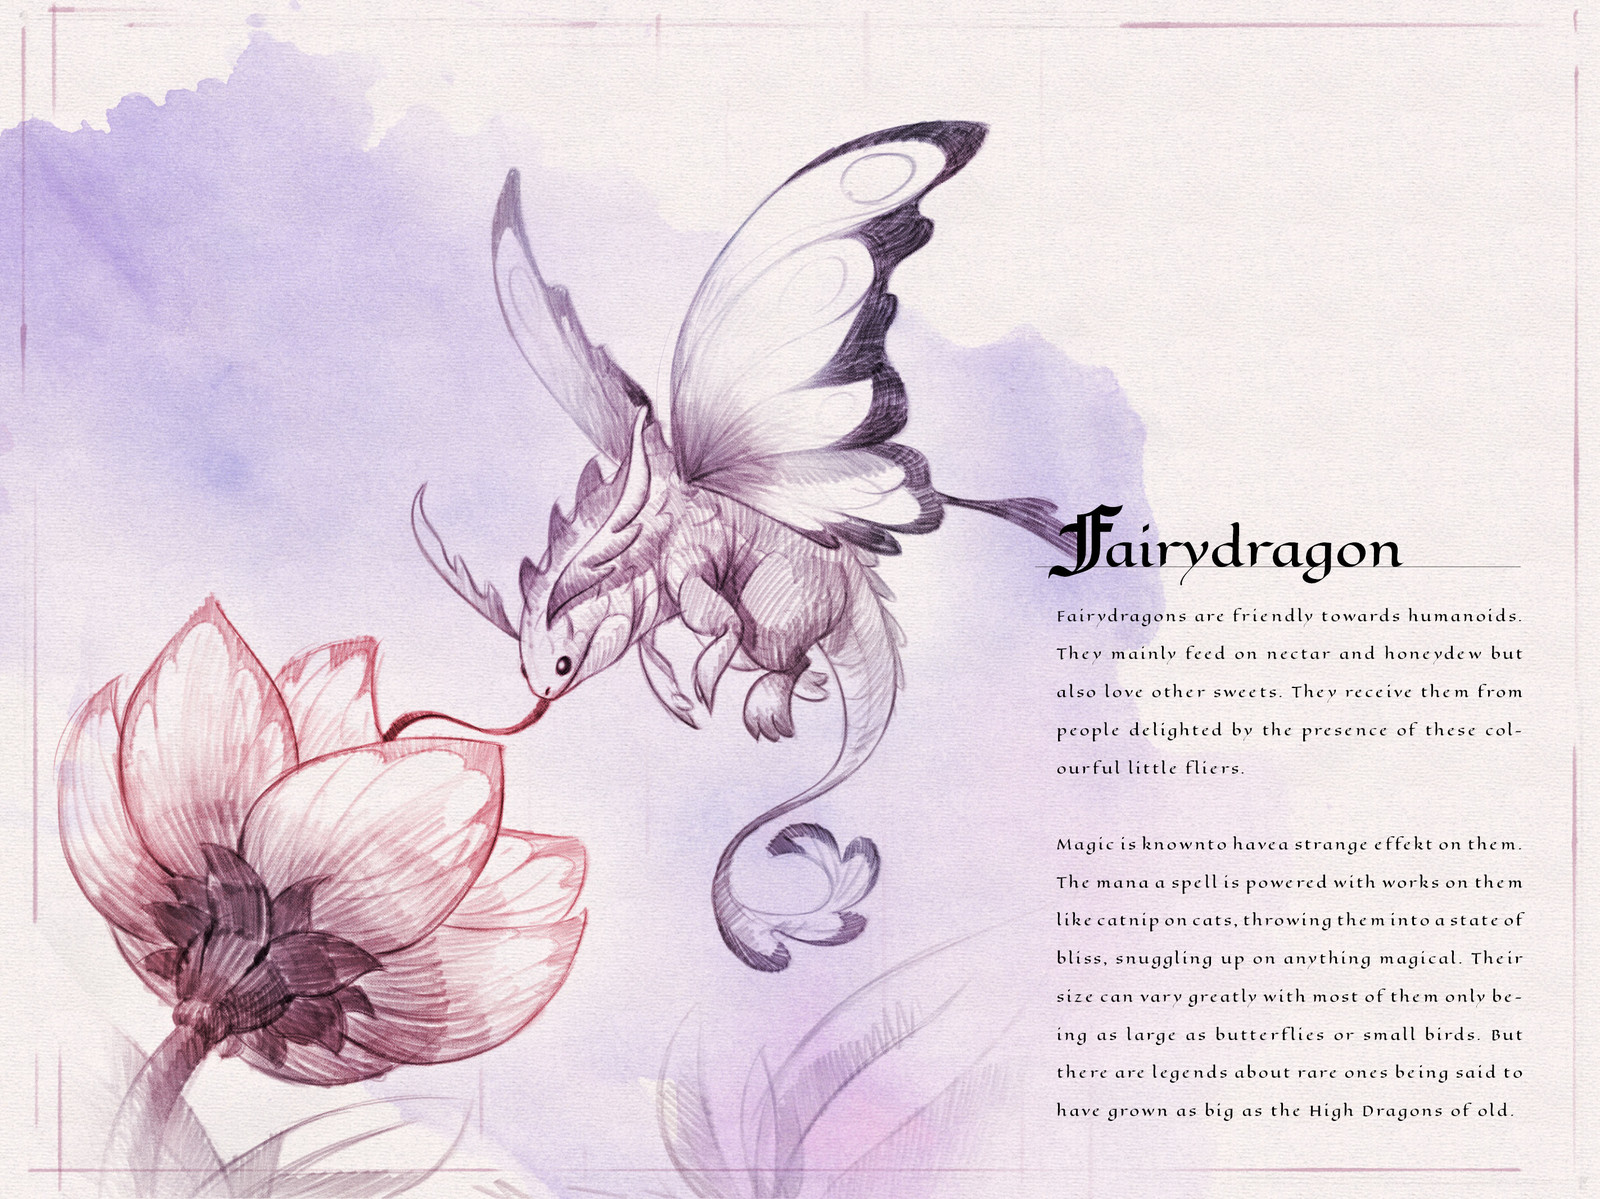 Page one of the  Dragon Compendium showing and describing the Fairydragon